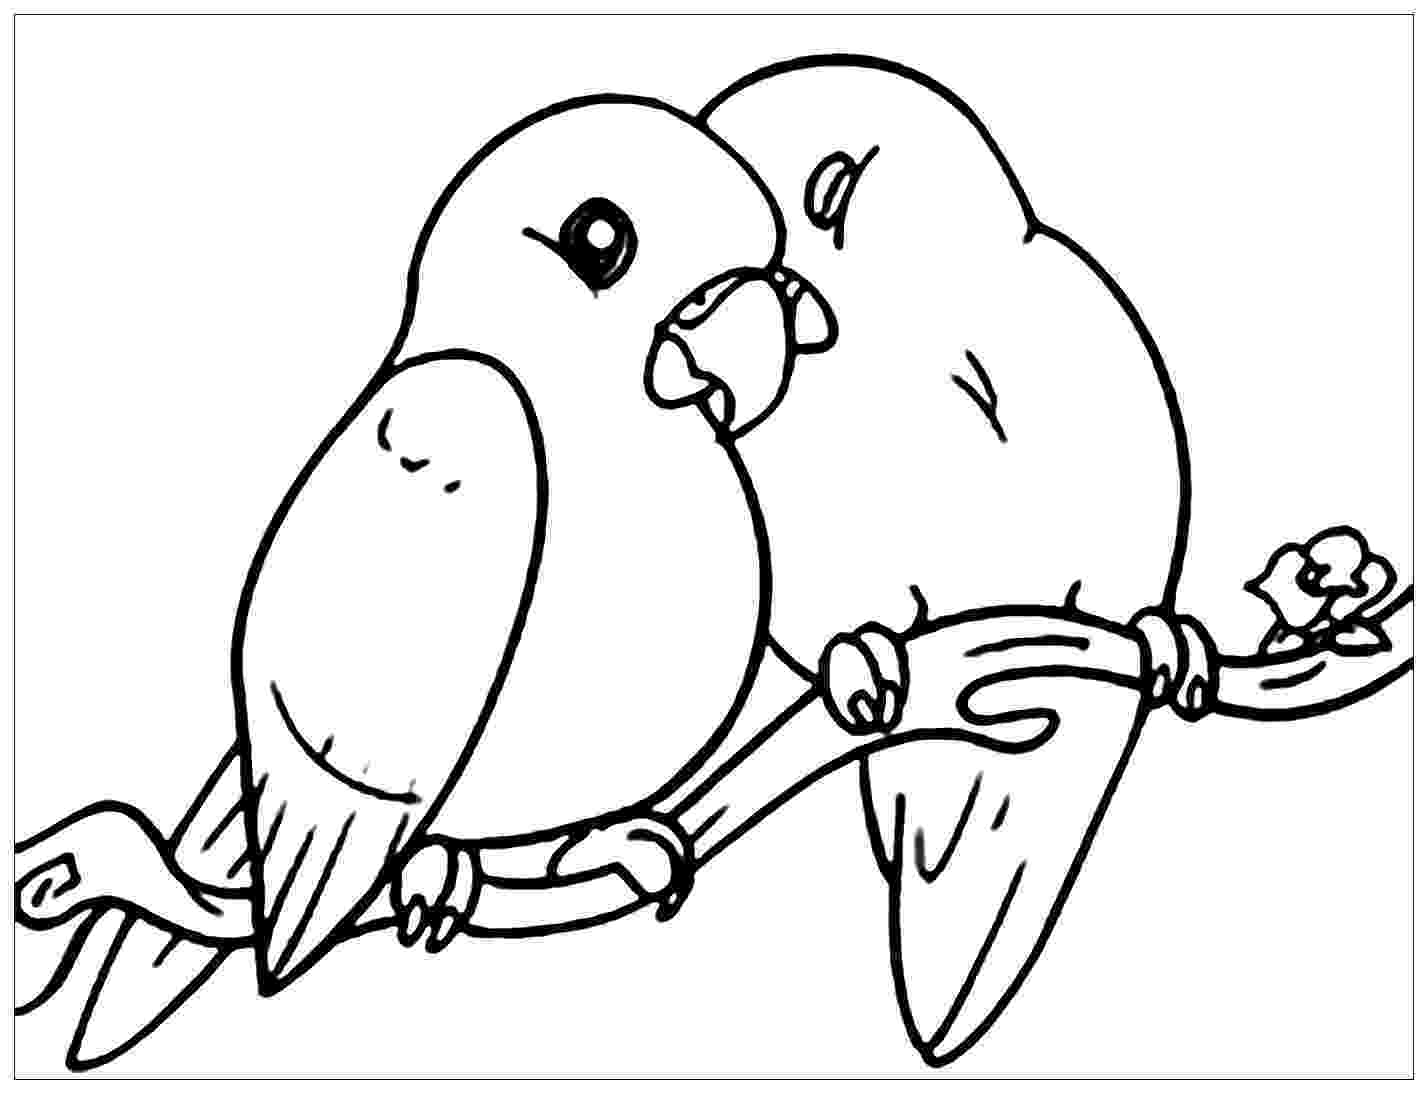 cockatiel coloring pages coloring sheets for burgess chapters homeschooling pages coloring cockatiel